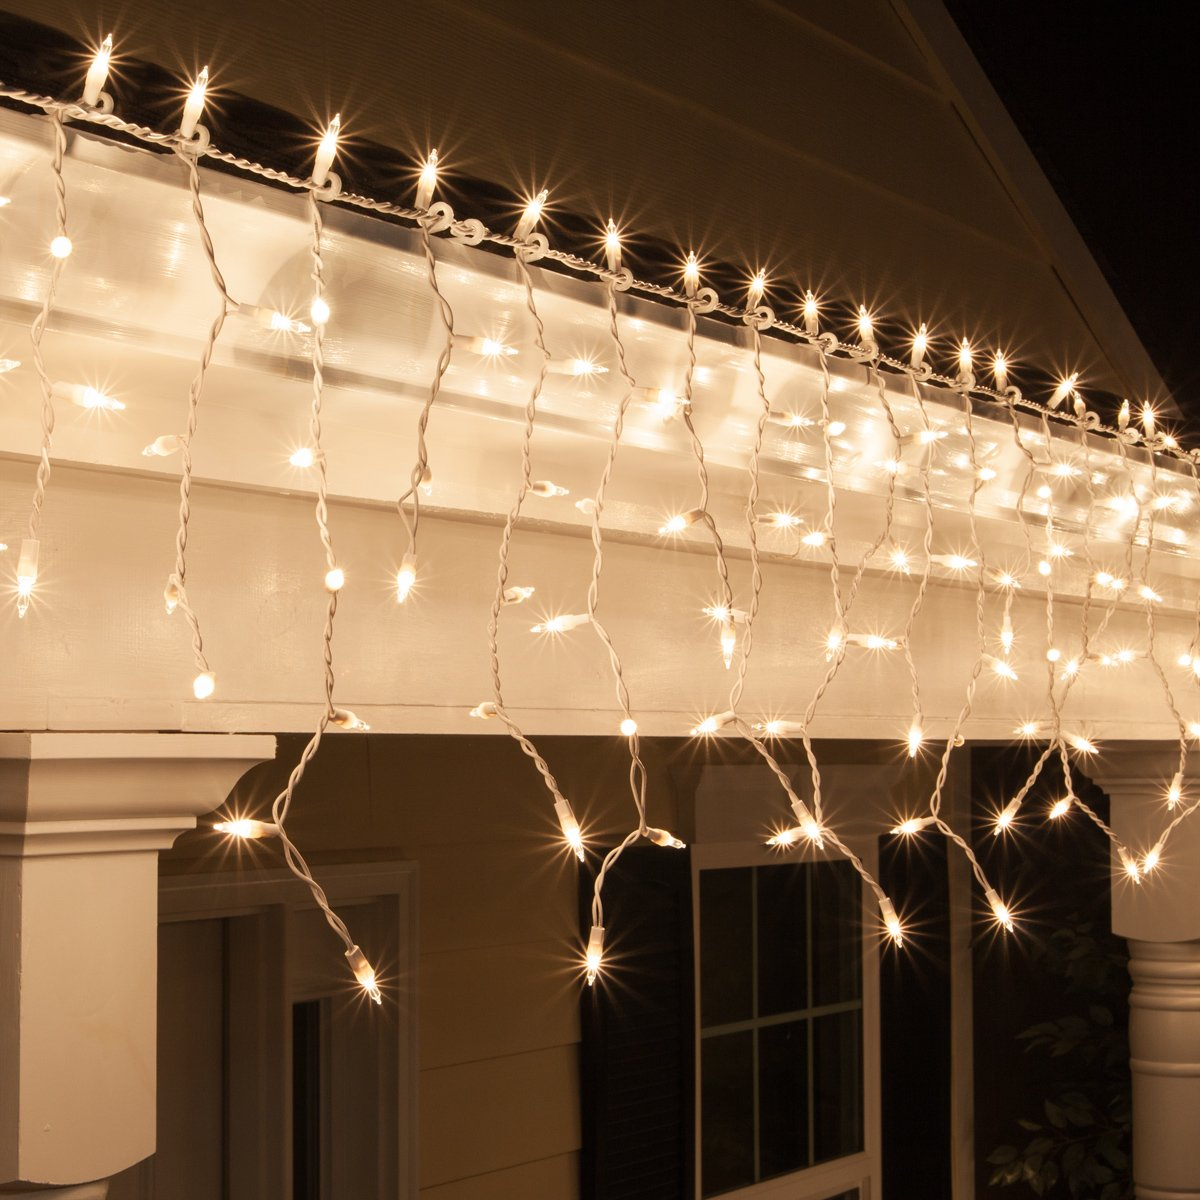 Amazon kringle traditions 9 ft 150 clear icicle lights with amazon kringle traditions 9 ft 150 clear icicle lights with long drops white wire indooroutdoor christmas lights outdoor holiday icicle lights aloadofball